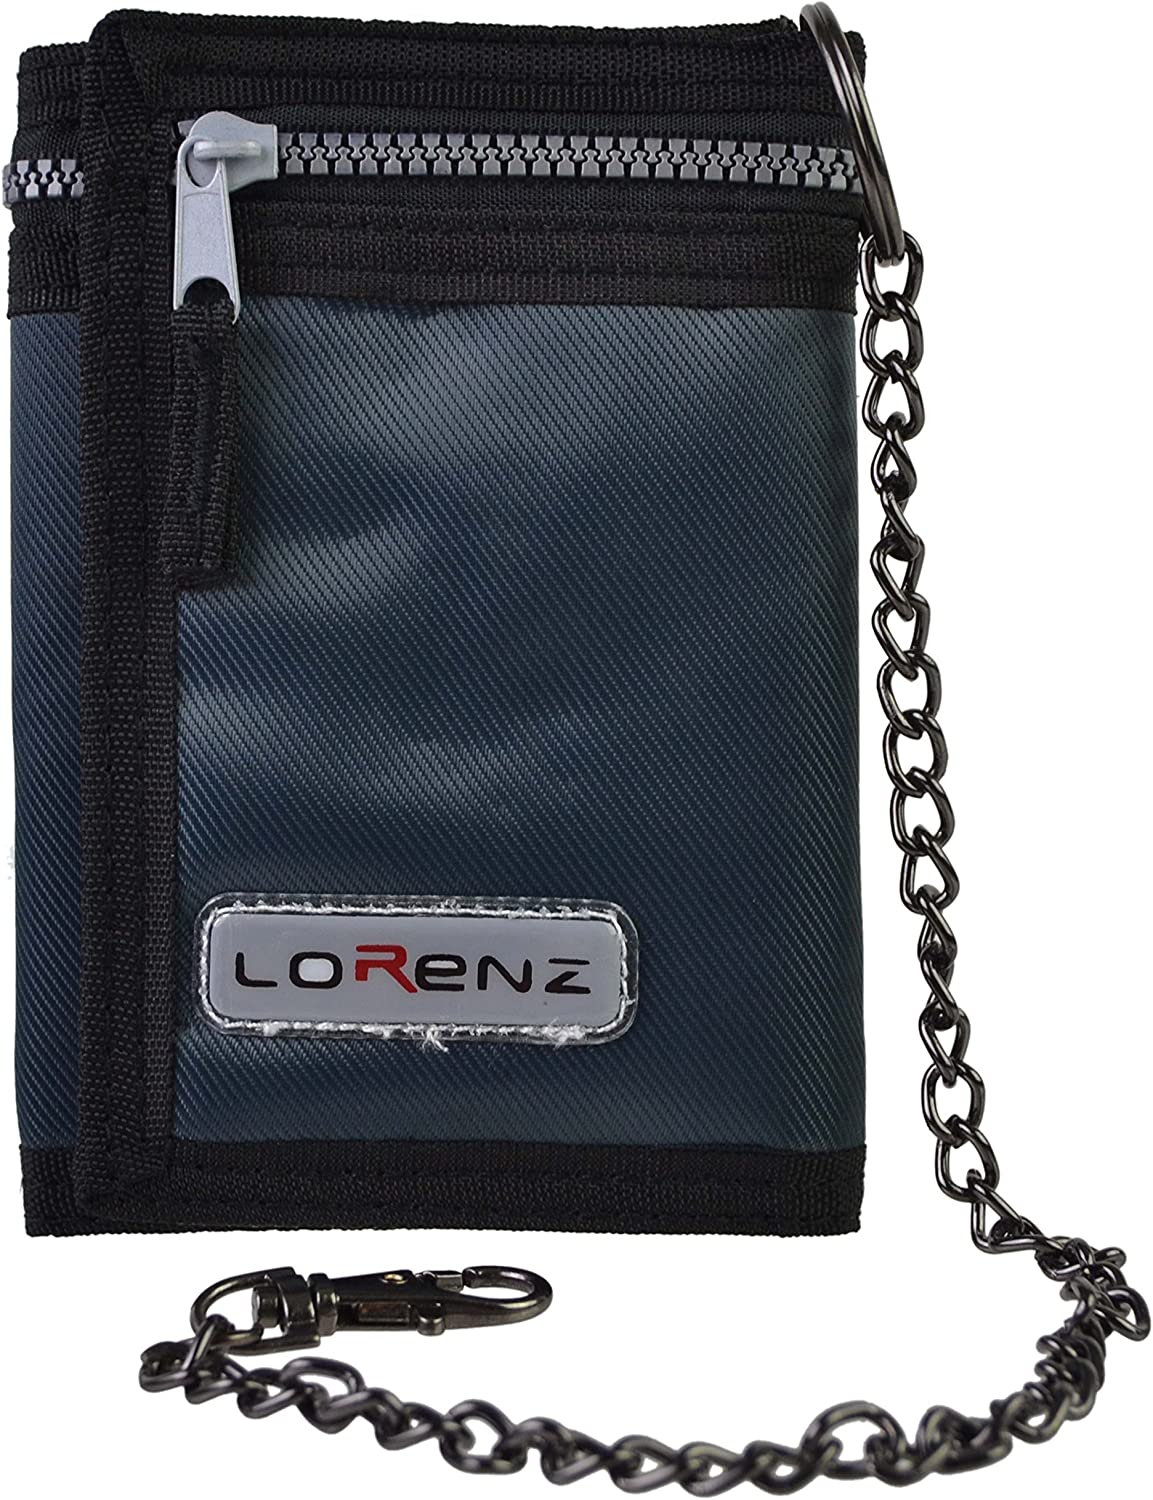 Mens Boys Trifold Sports Wallet by Lorenz with Security Chain Handy-Black